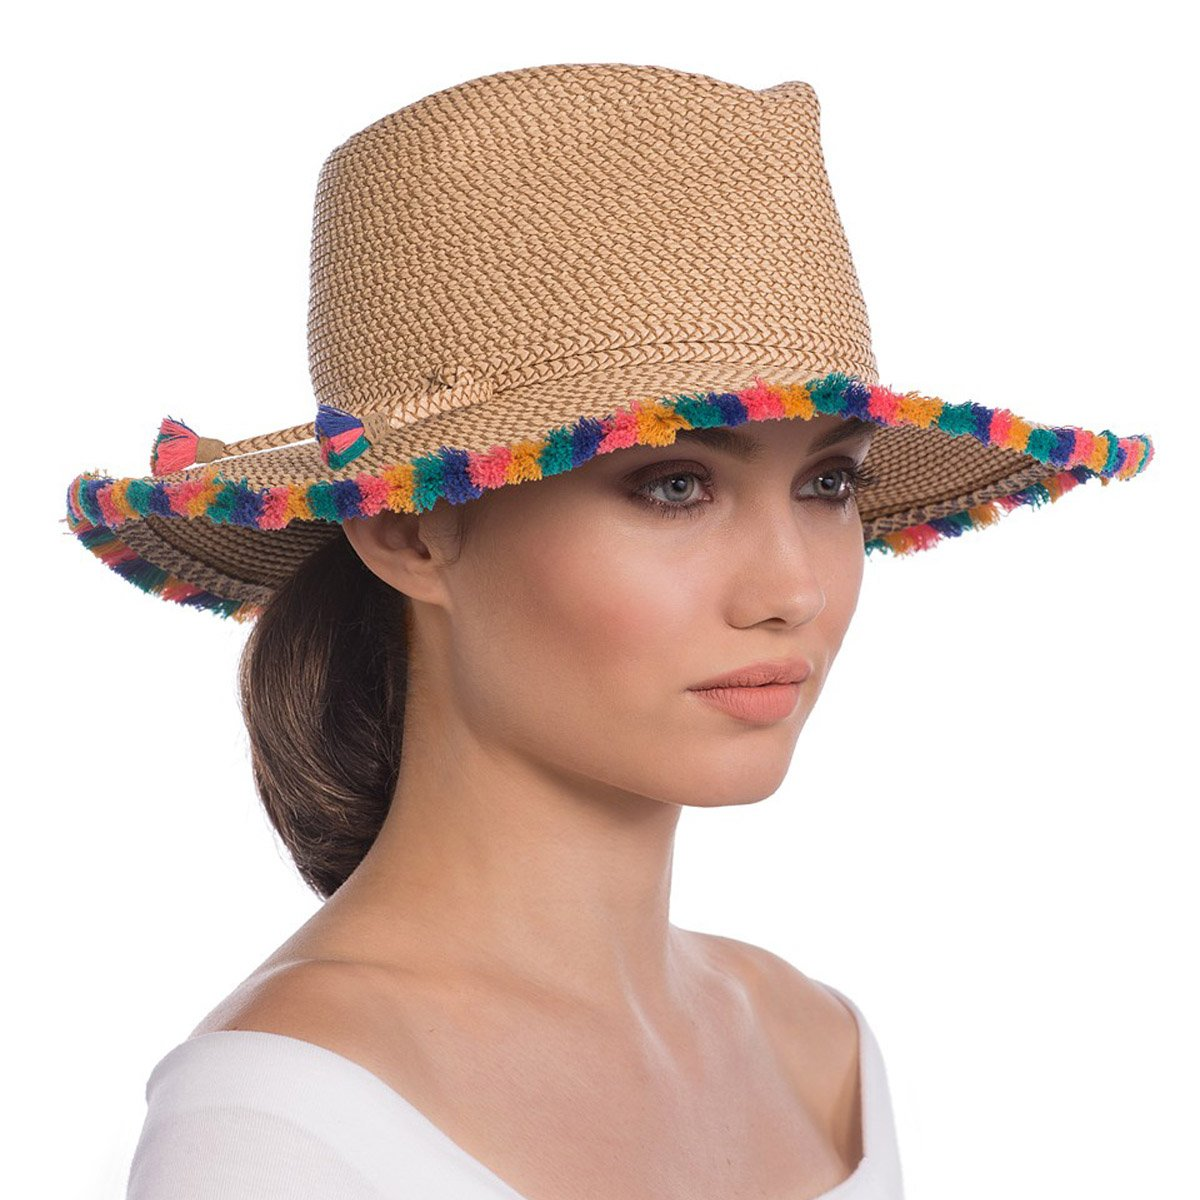 Eric Javits Luxury Fashion Designer Women's Headwear Hat - Frida - Peanut Mix